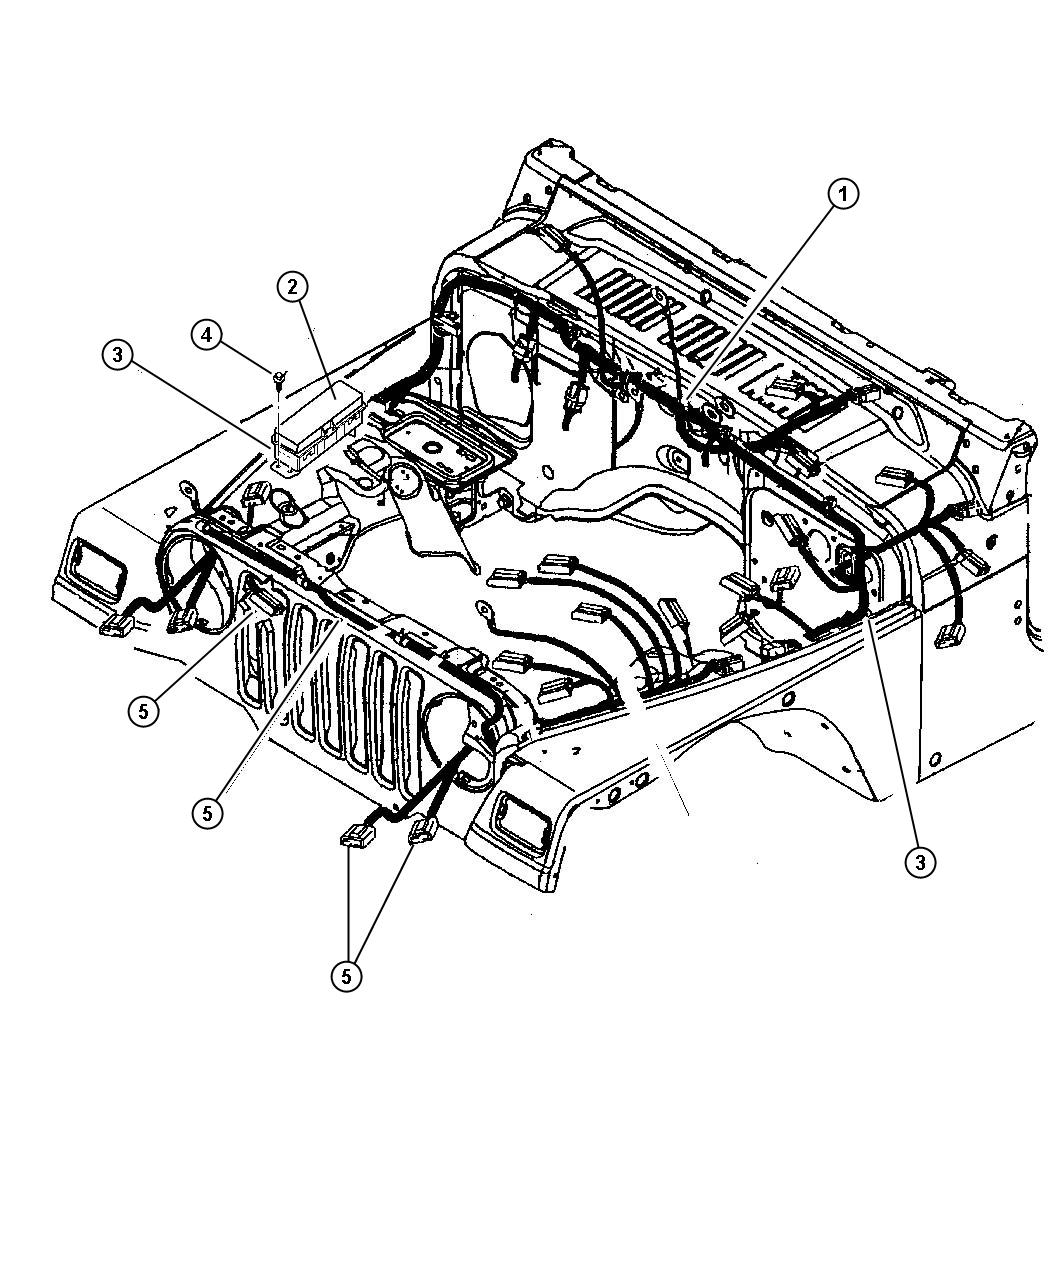 Jeep Wrangler Yj Electrical Diagram